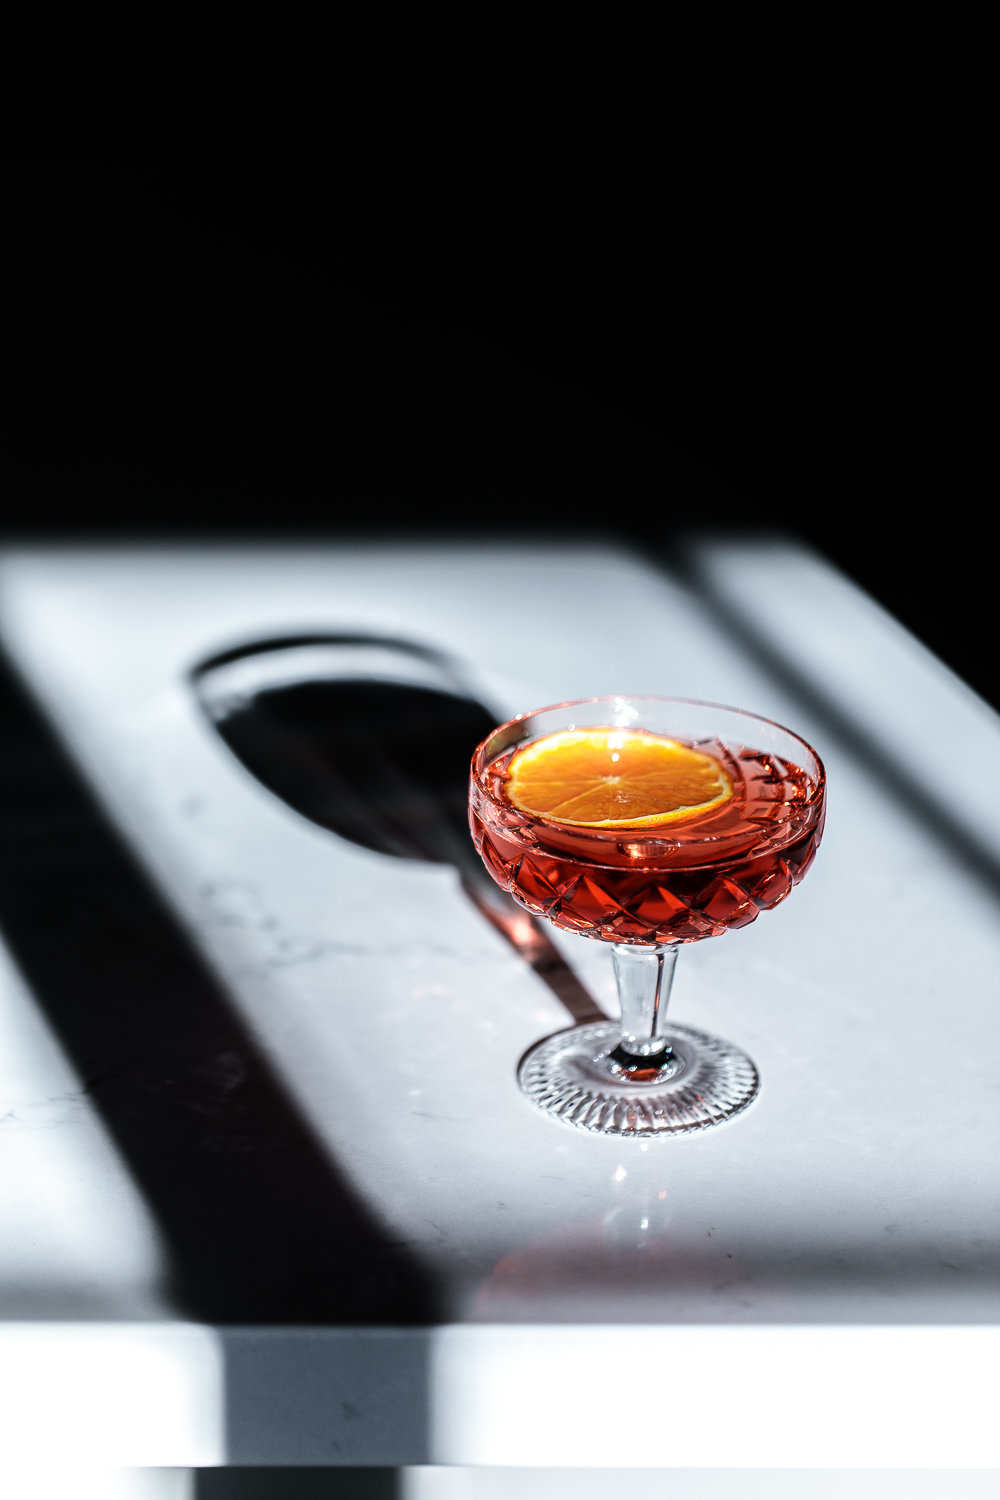 Negroni Shadow Play - Anisa Sabet - The Macadames - Food Travel Lifestyle Photographer-135